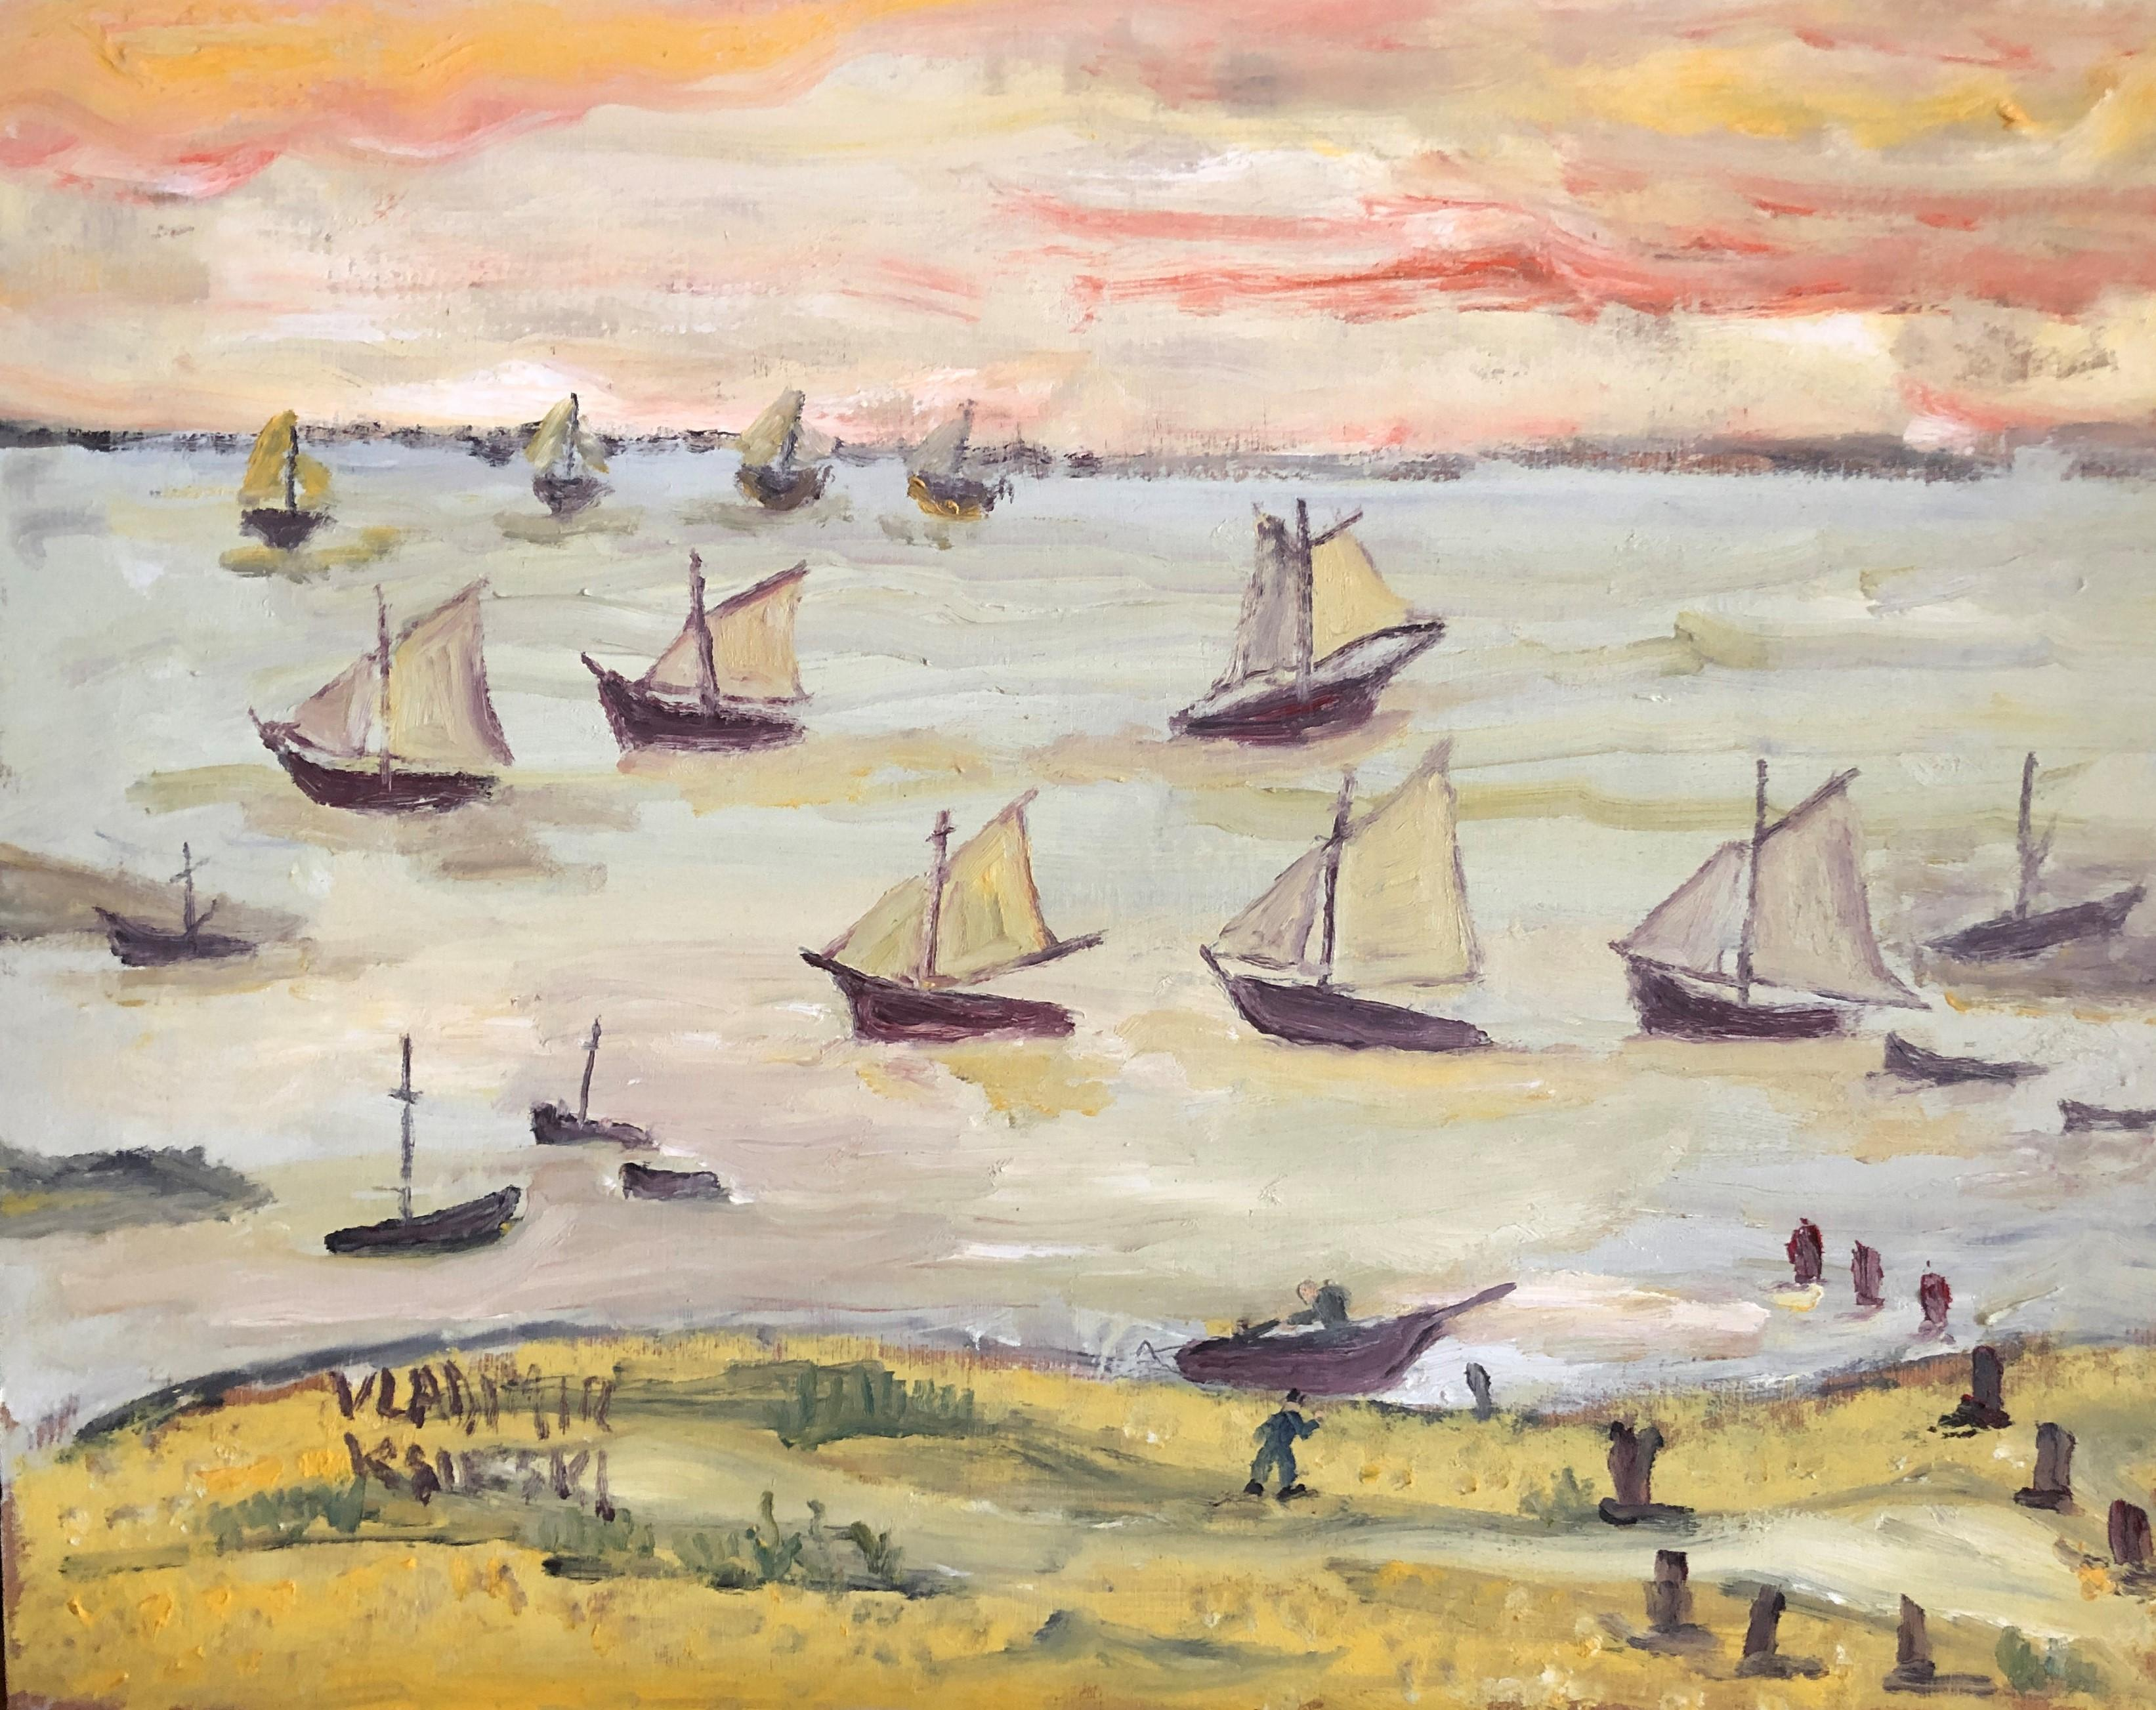 Sailboats in the sea oil painting seascape